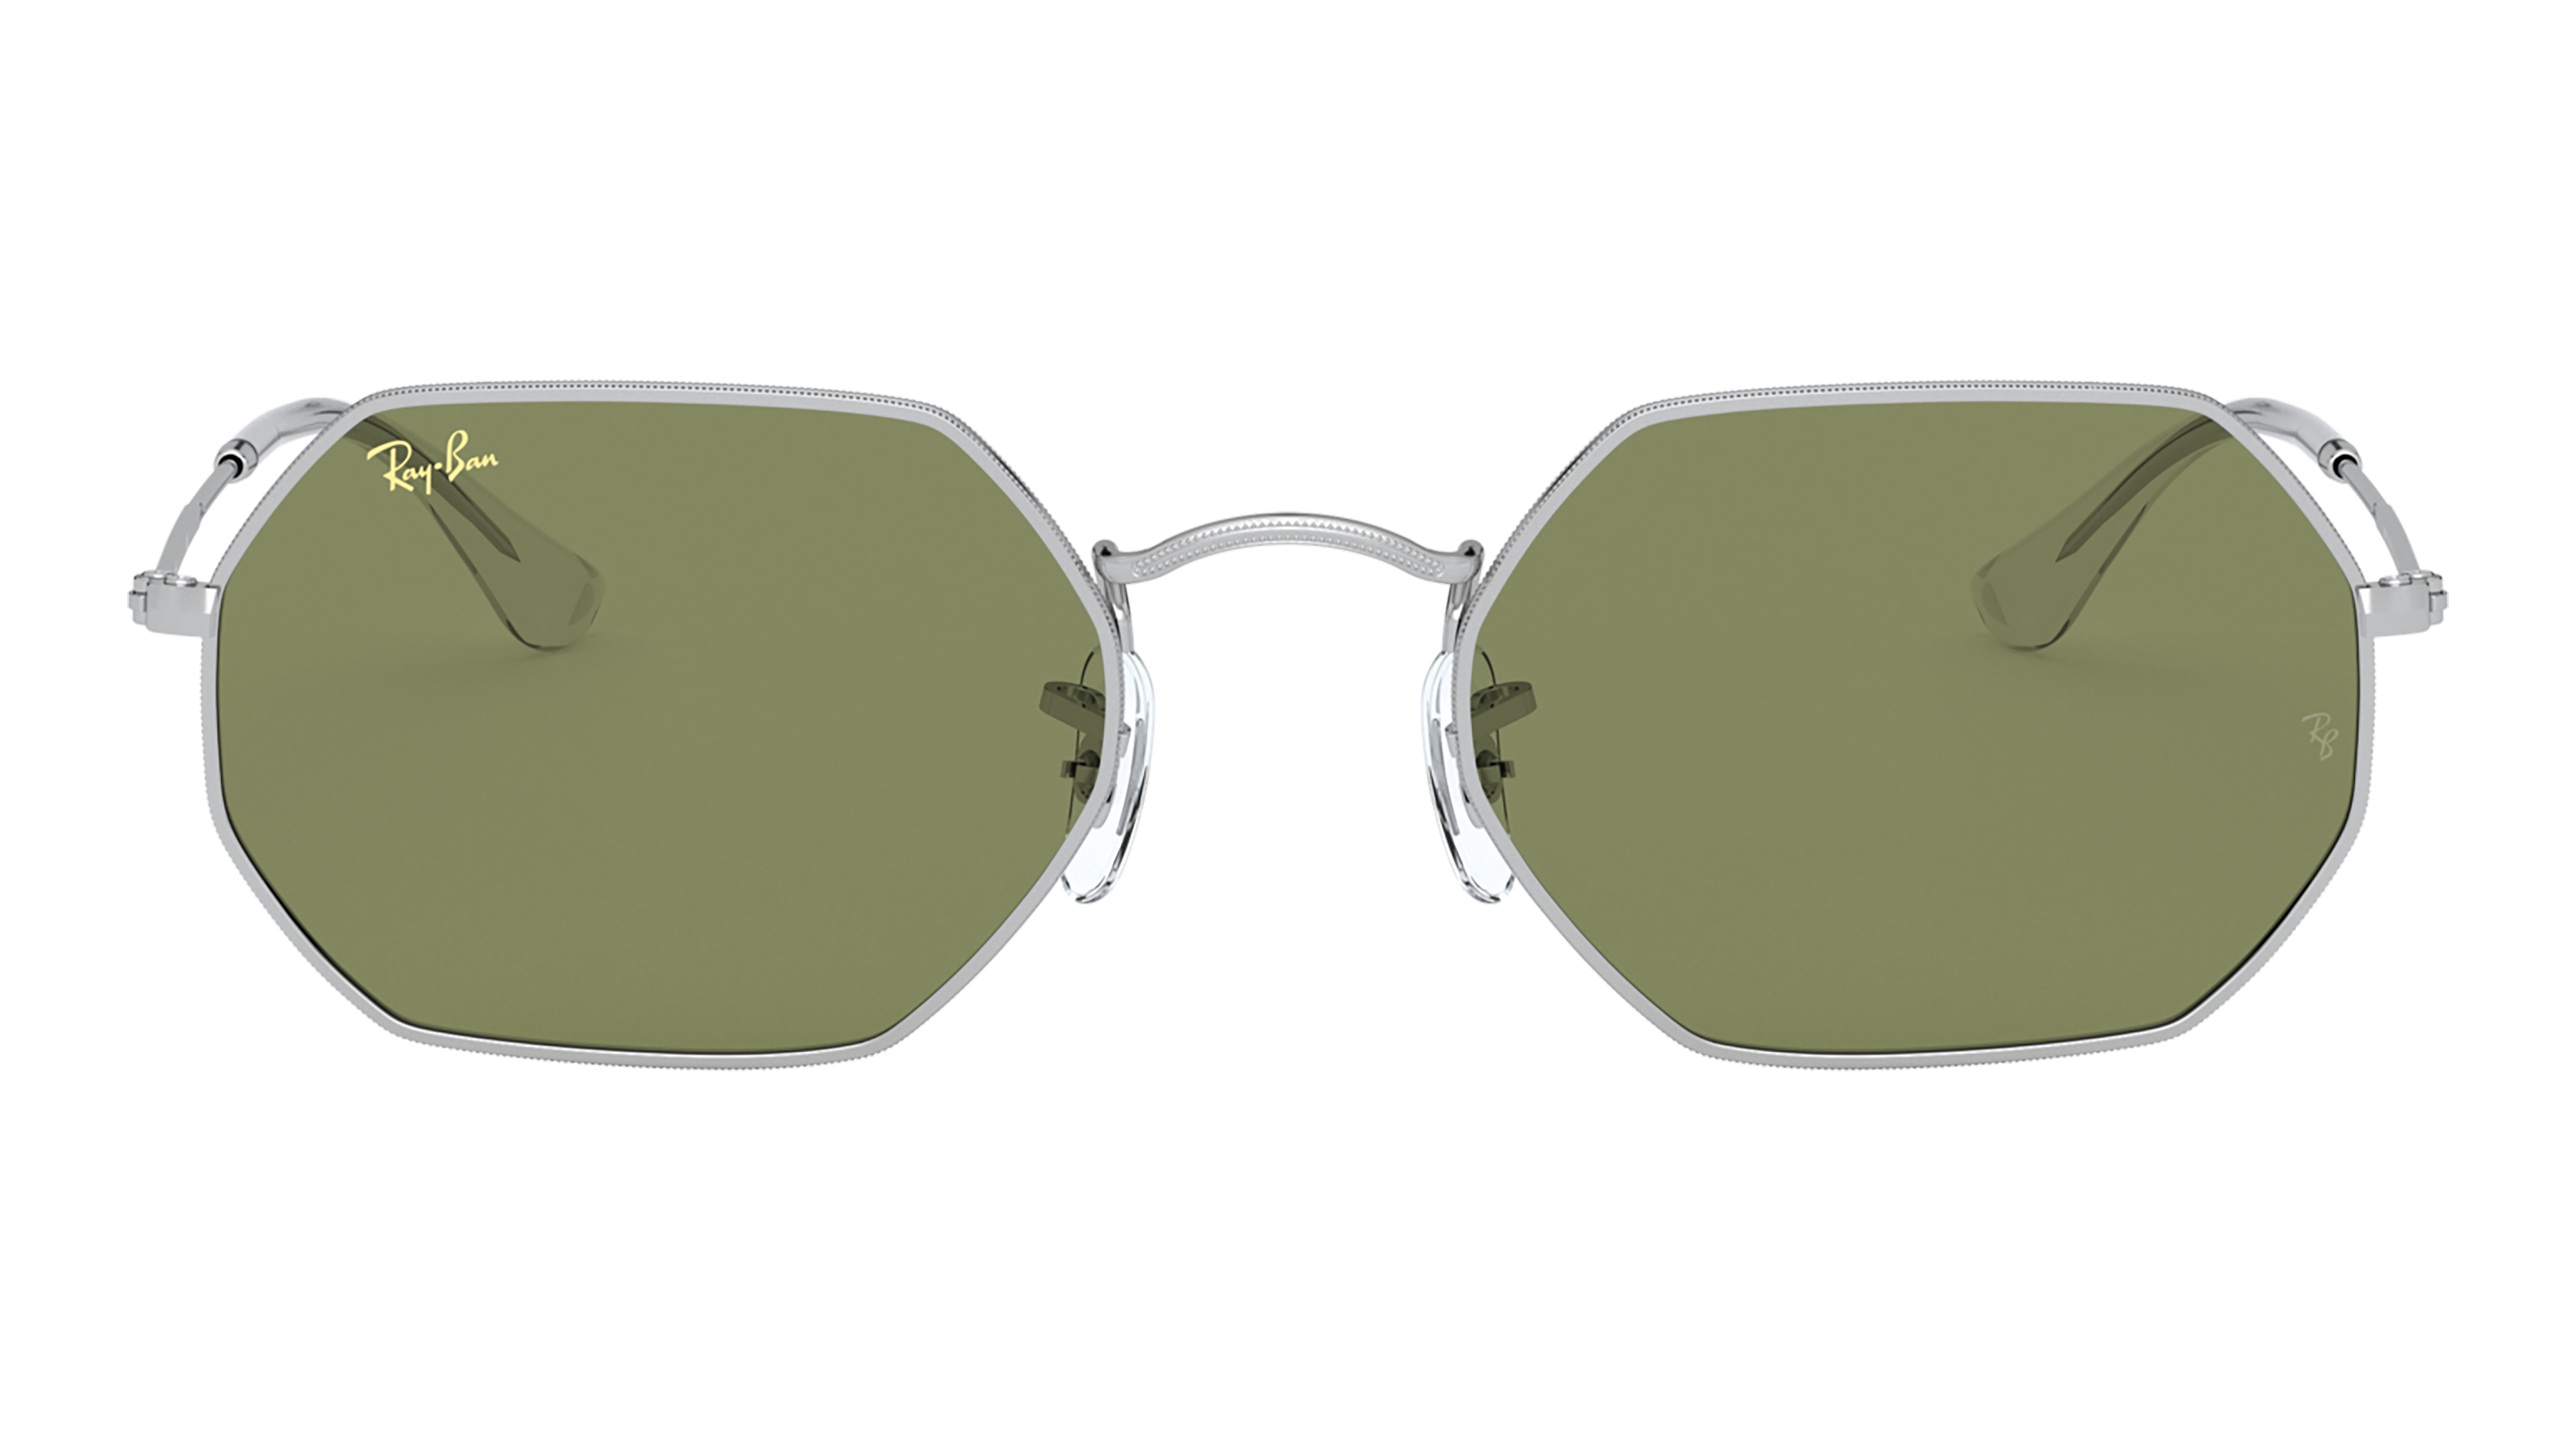 Front Ray-Ban Ray-Ban 0RB3556 91984E 53/21 Zilver/Groen